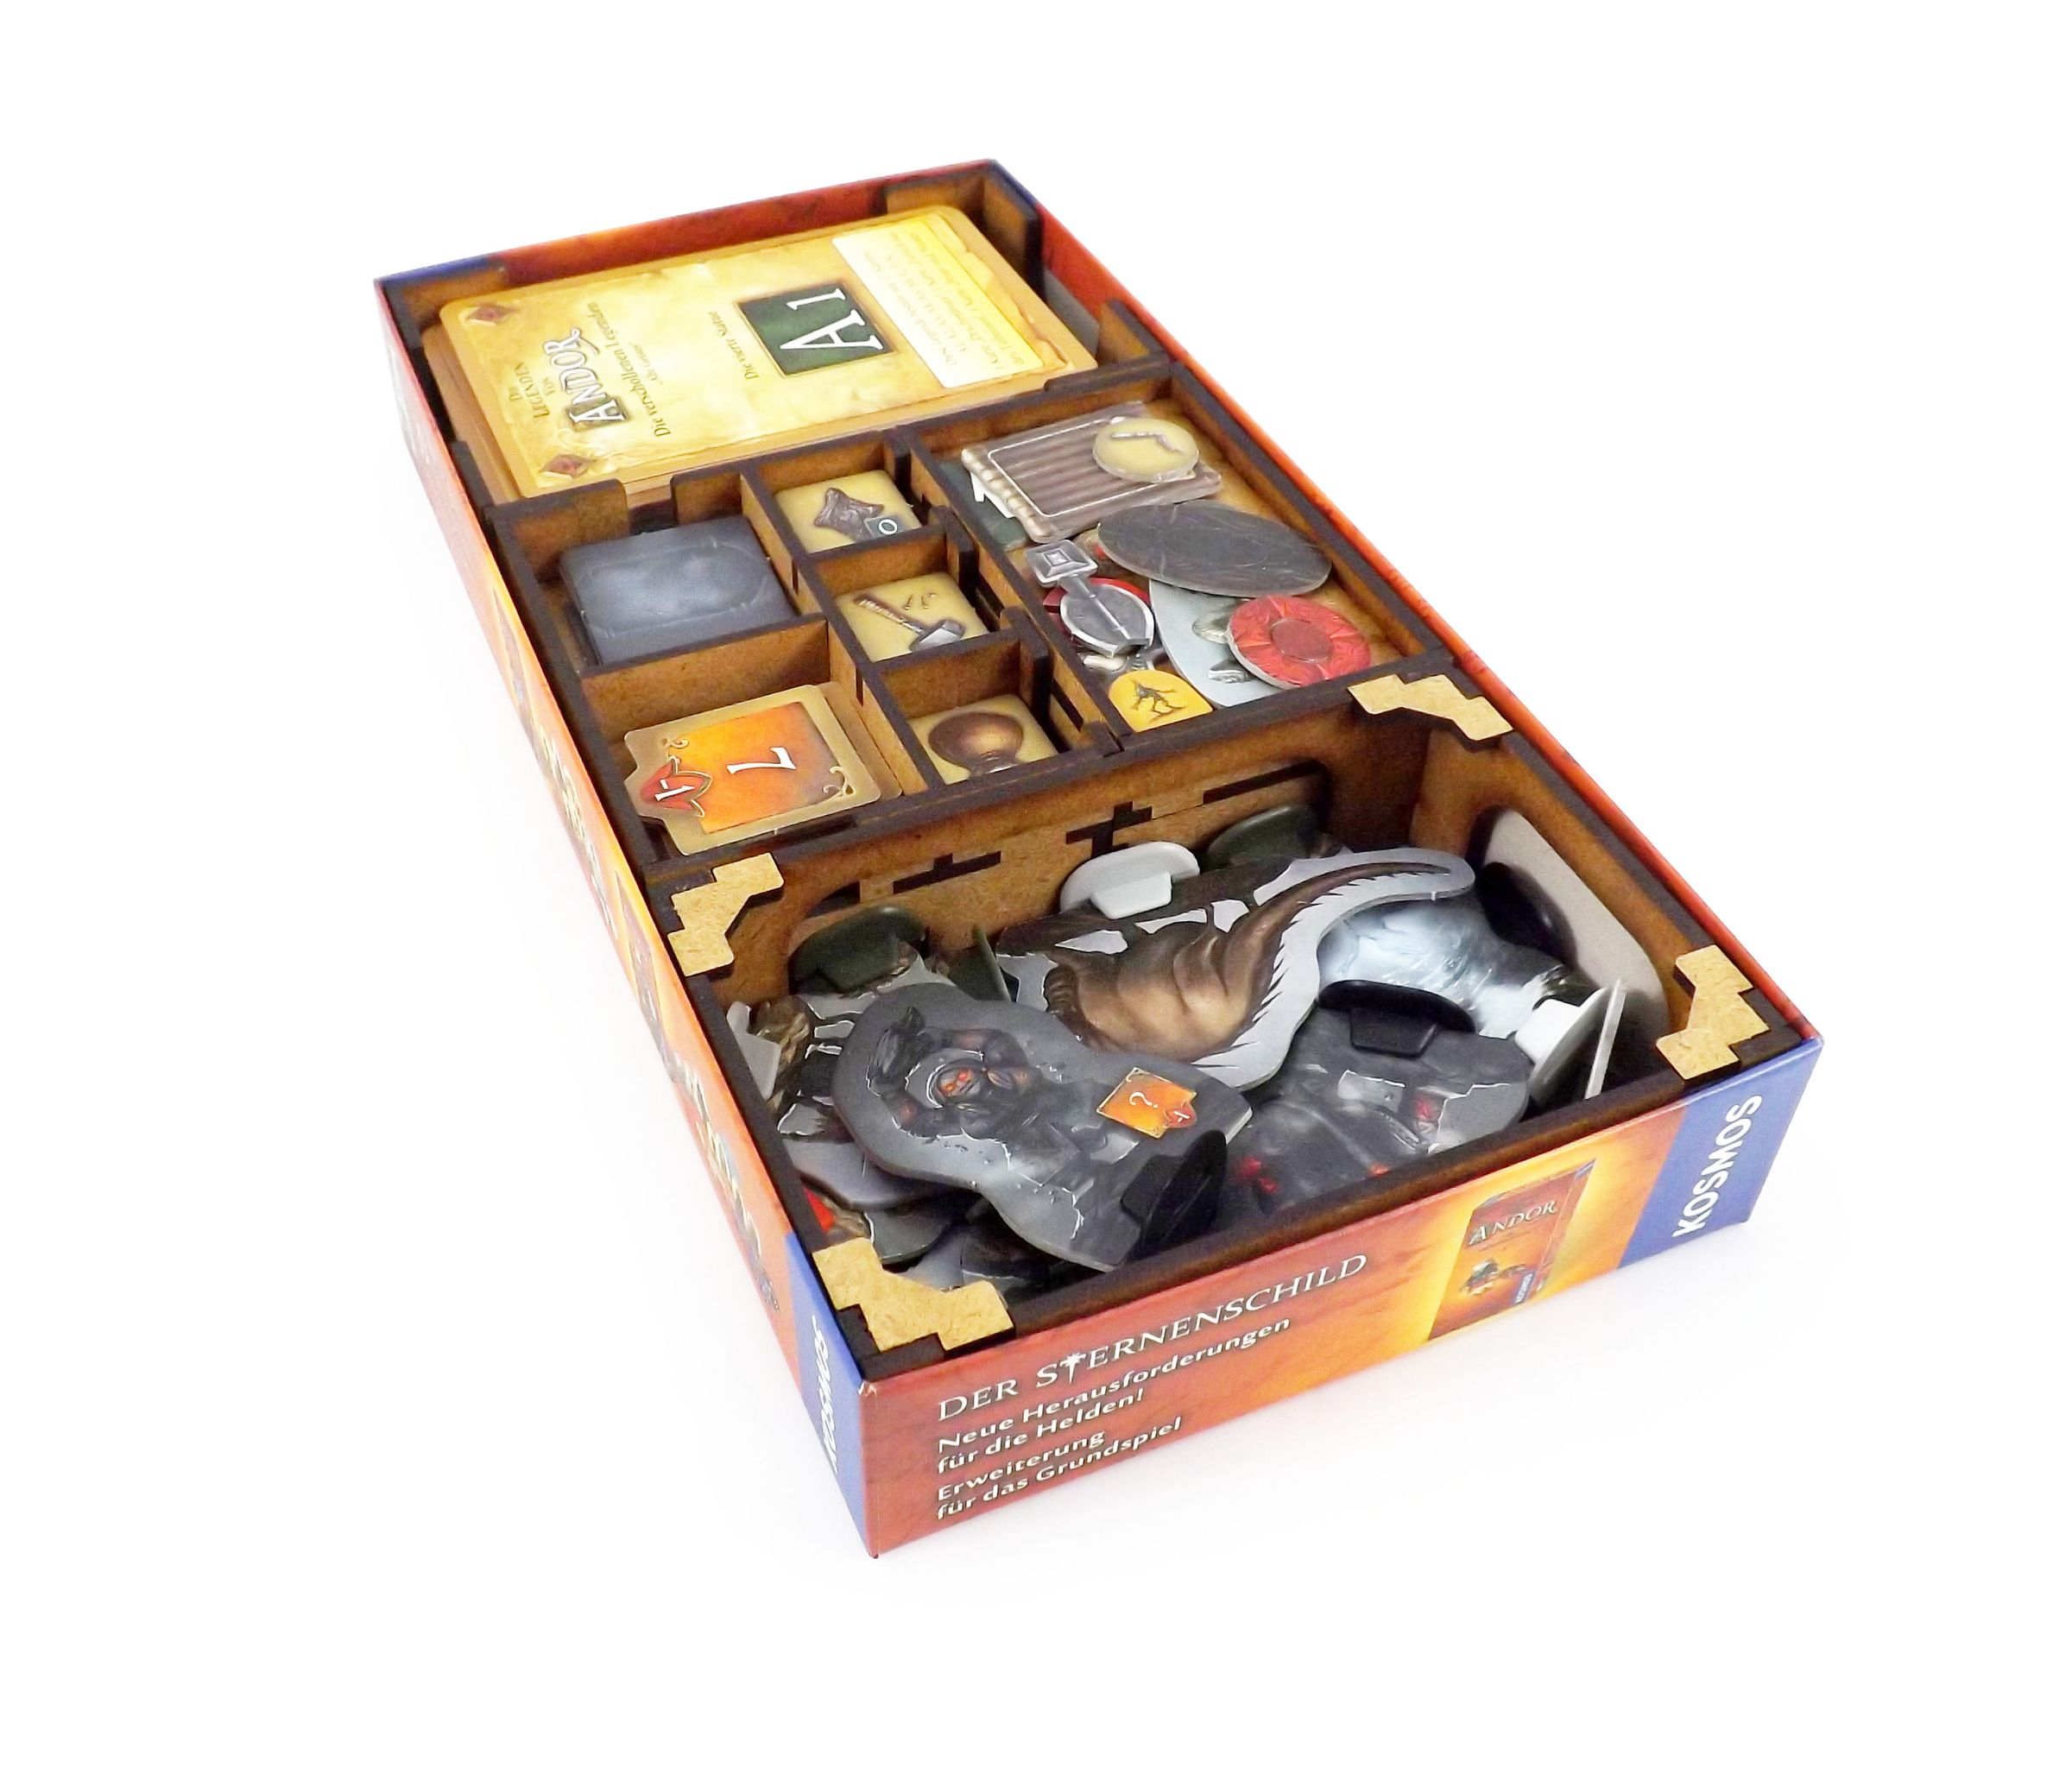 Boardgame Organizer for Legends of Andor Lost Legends: Ancient Spirits